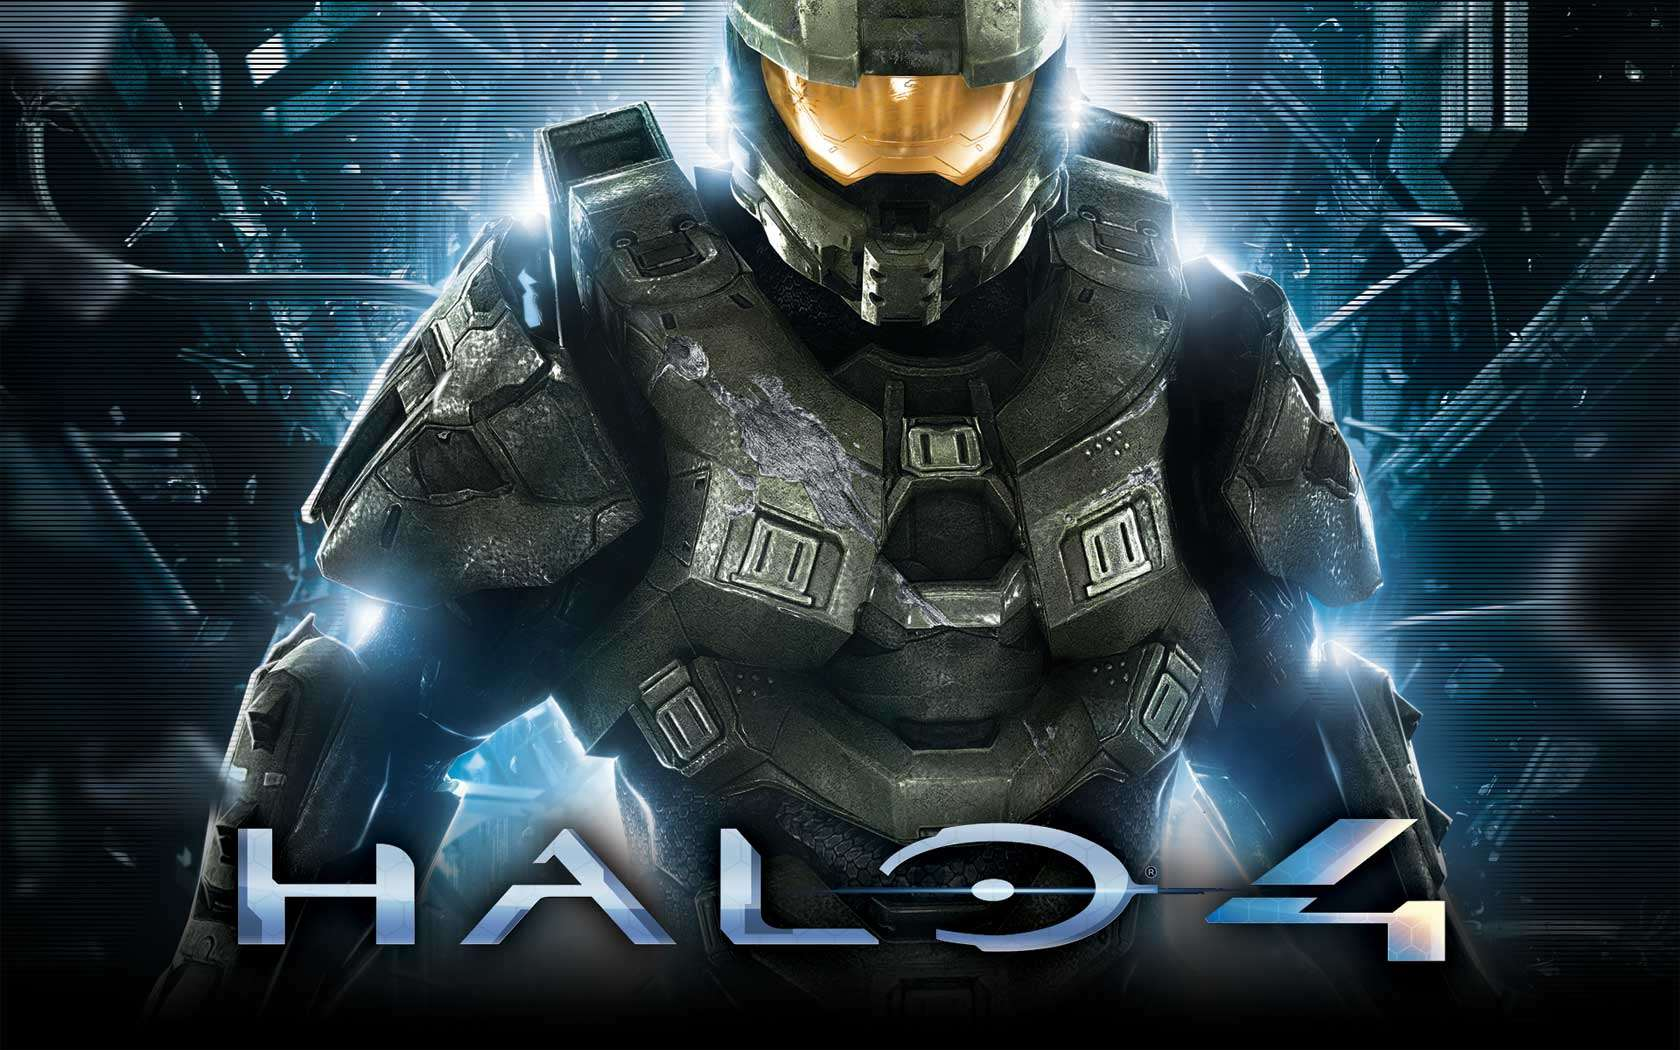 Halo 4 Wallpaper 1   First Person Shooters Wallpaper   First Person 1680x1050